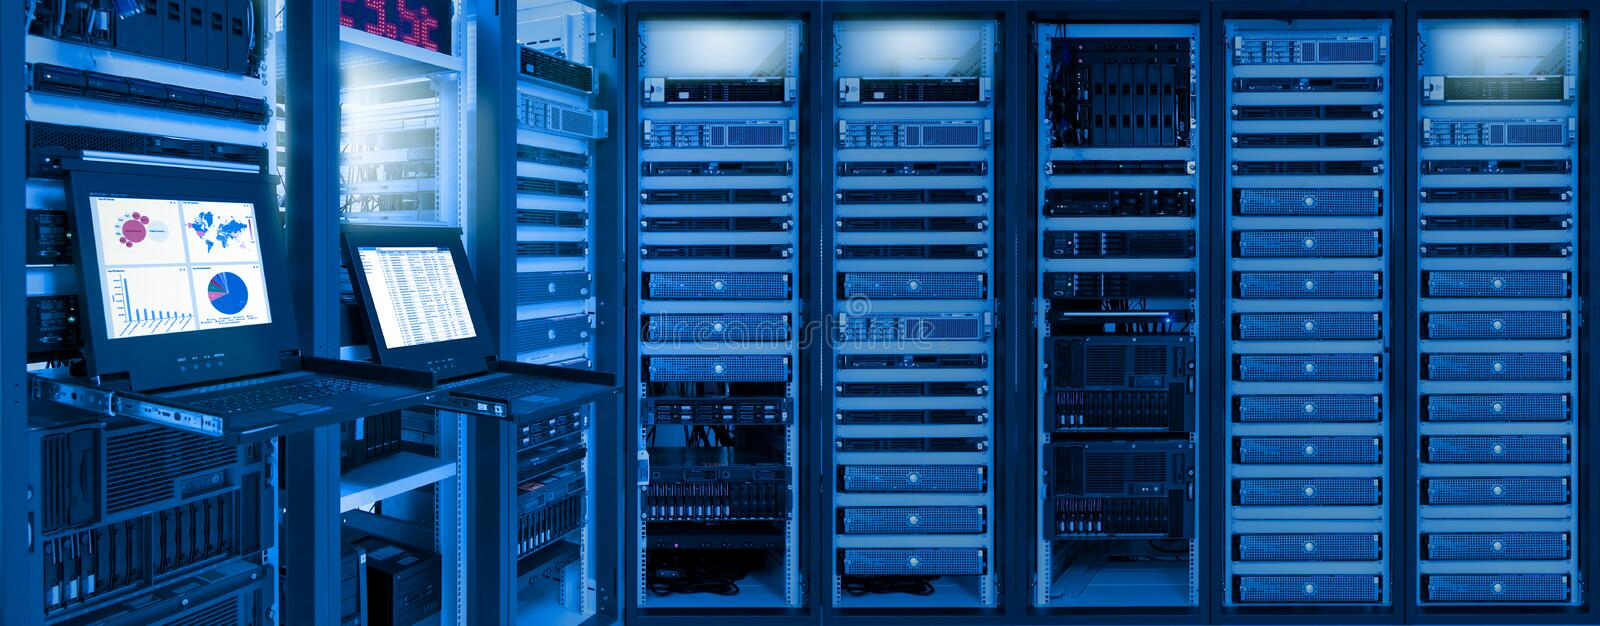 Information of network traffic and status of devices in data center room. Monitor show information of network traffic and status of devices in data center room stock photo